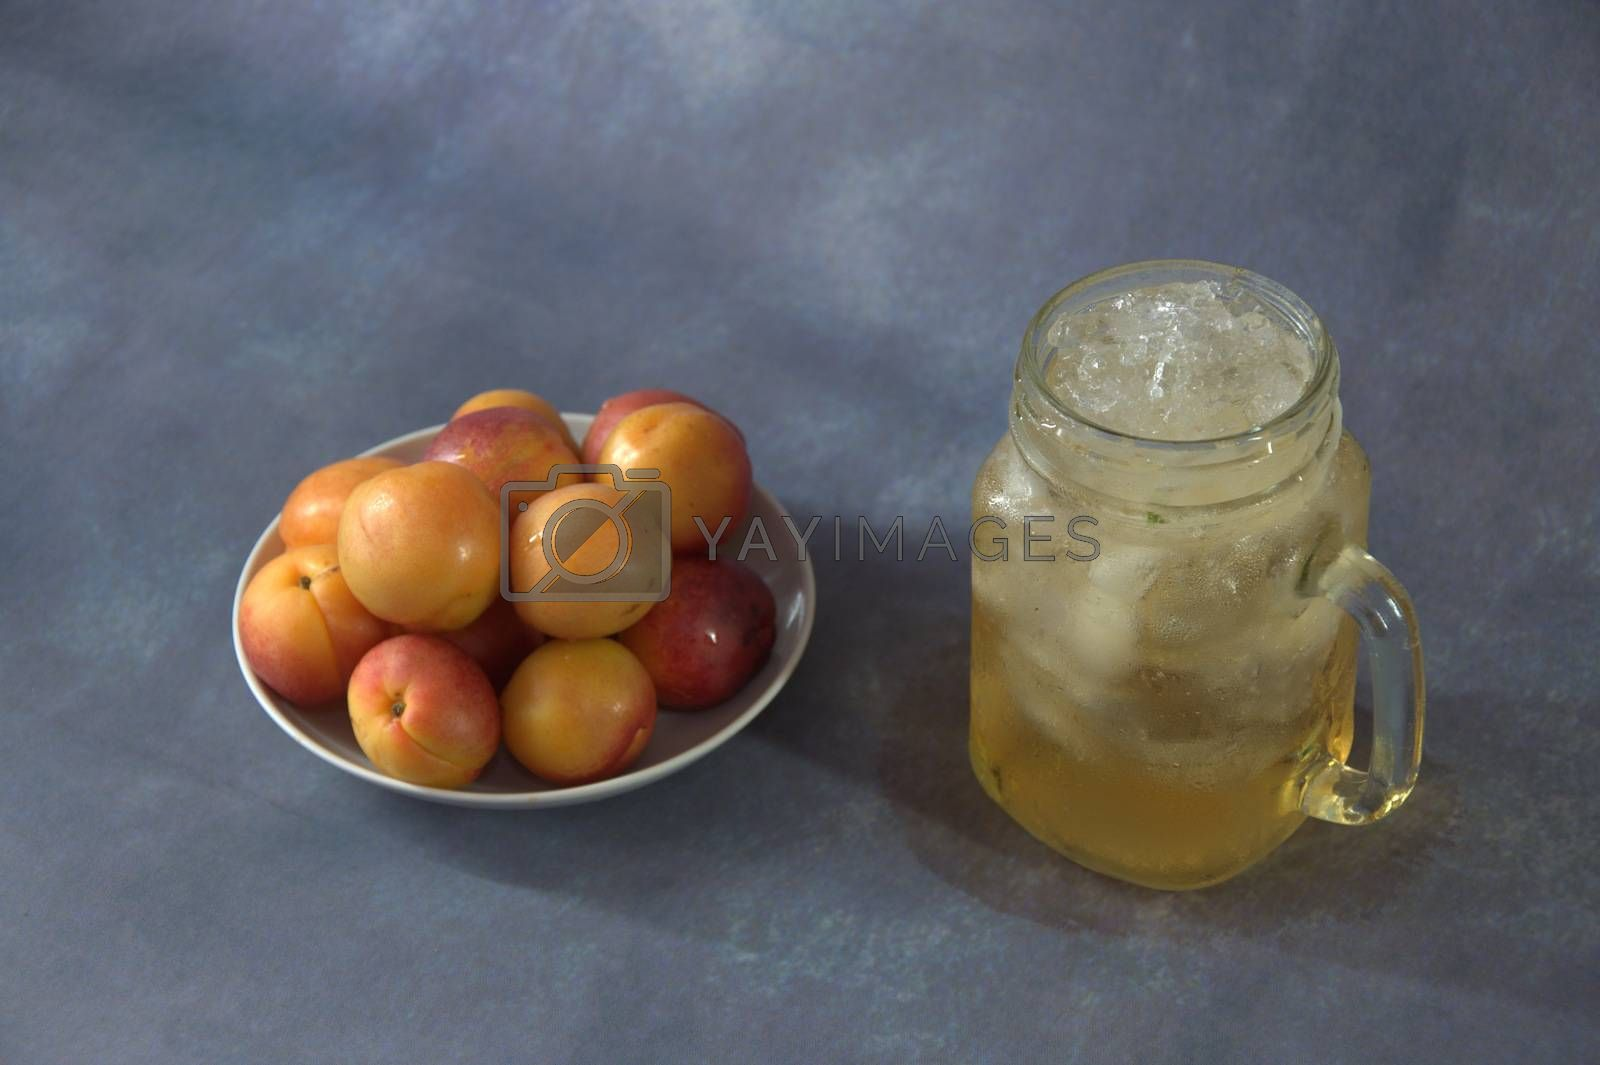 Royalty free image of A glass mug with a refreshing juice with ice and a full plate with ripe apricots. Close-up. by alexey_zheltukhin